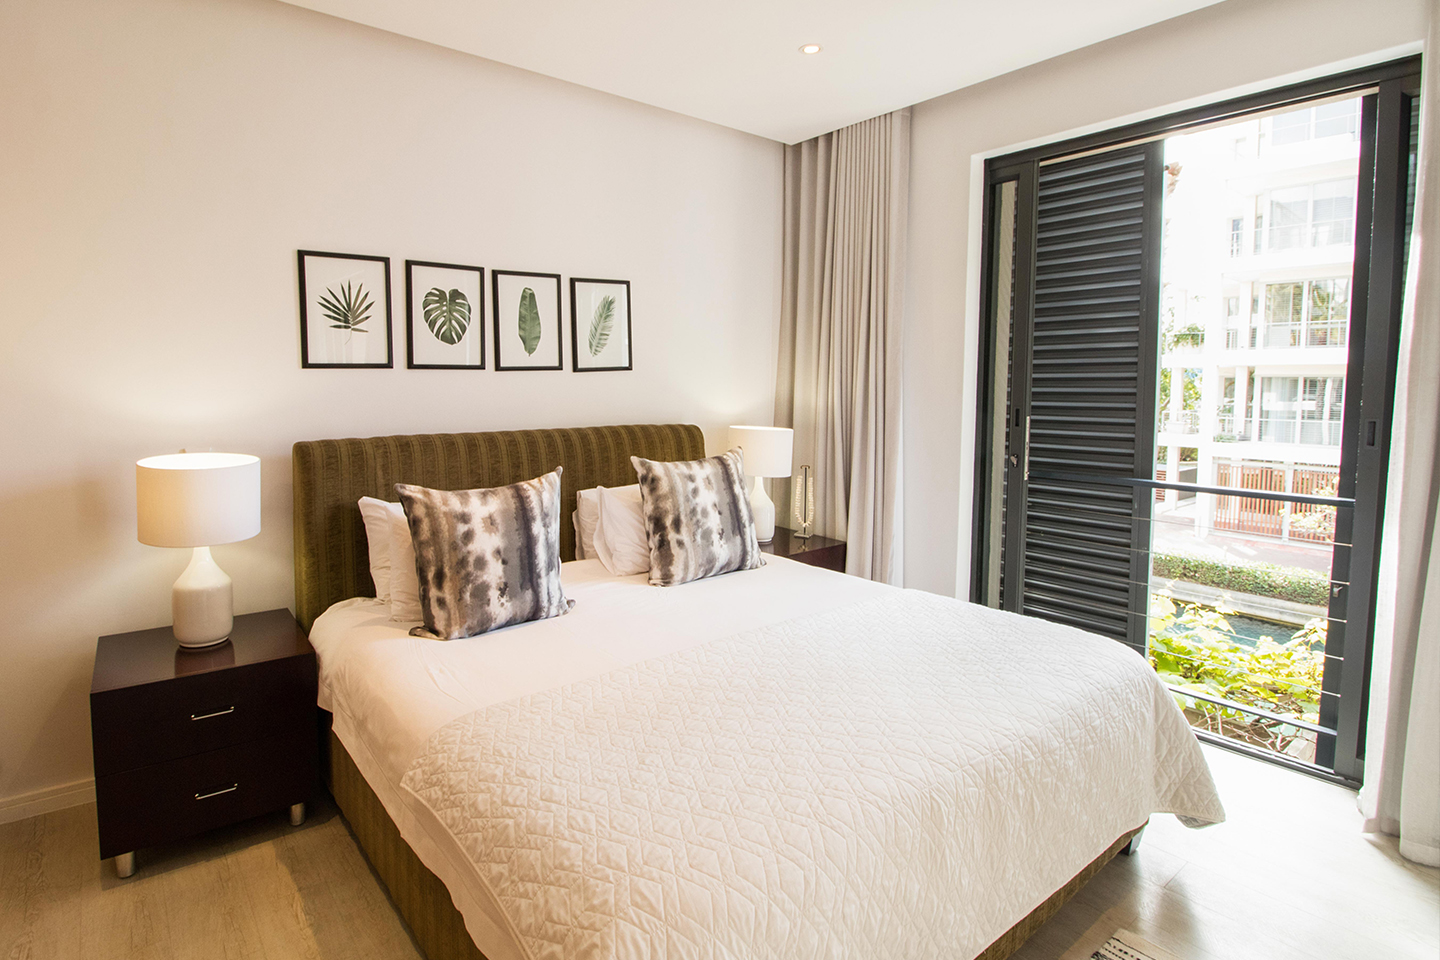 Bedspread at Waterfront Village - Citybase Apartments